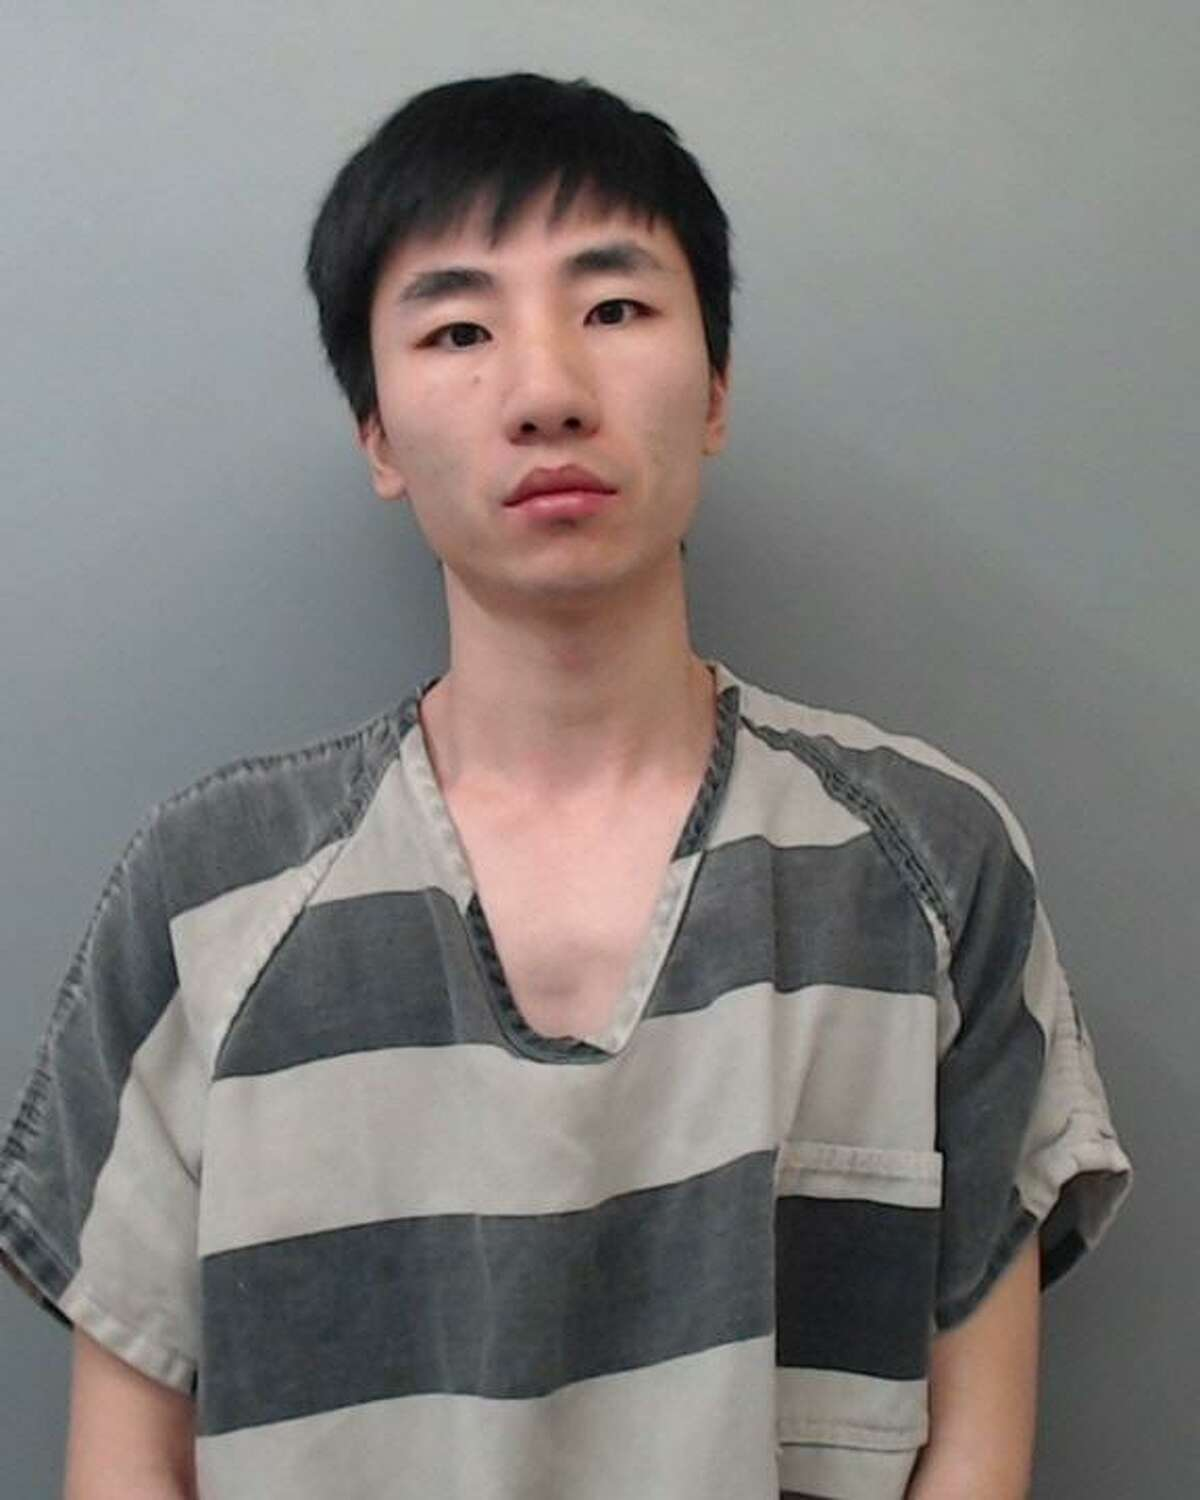 Alex Chen, 29, was charged with keeping a gambling place, gambling promotion and engaging in organized criminal activity.